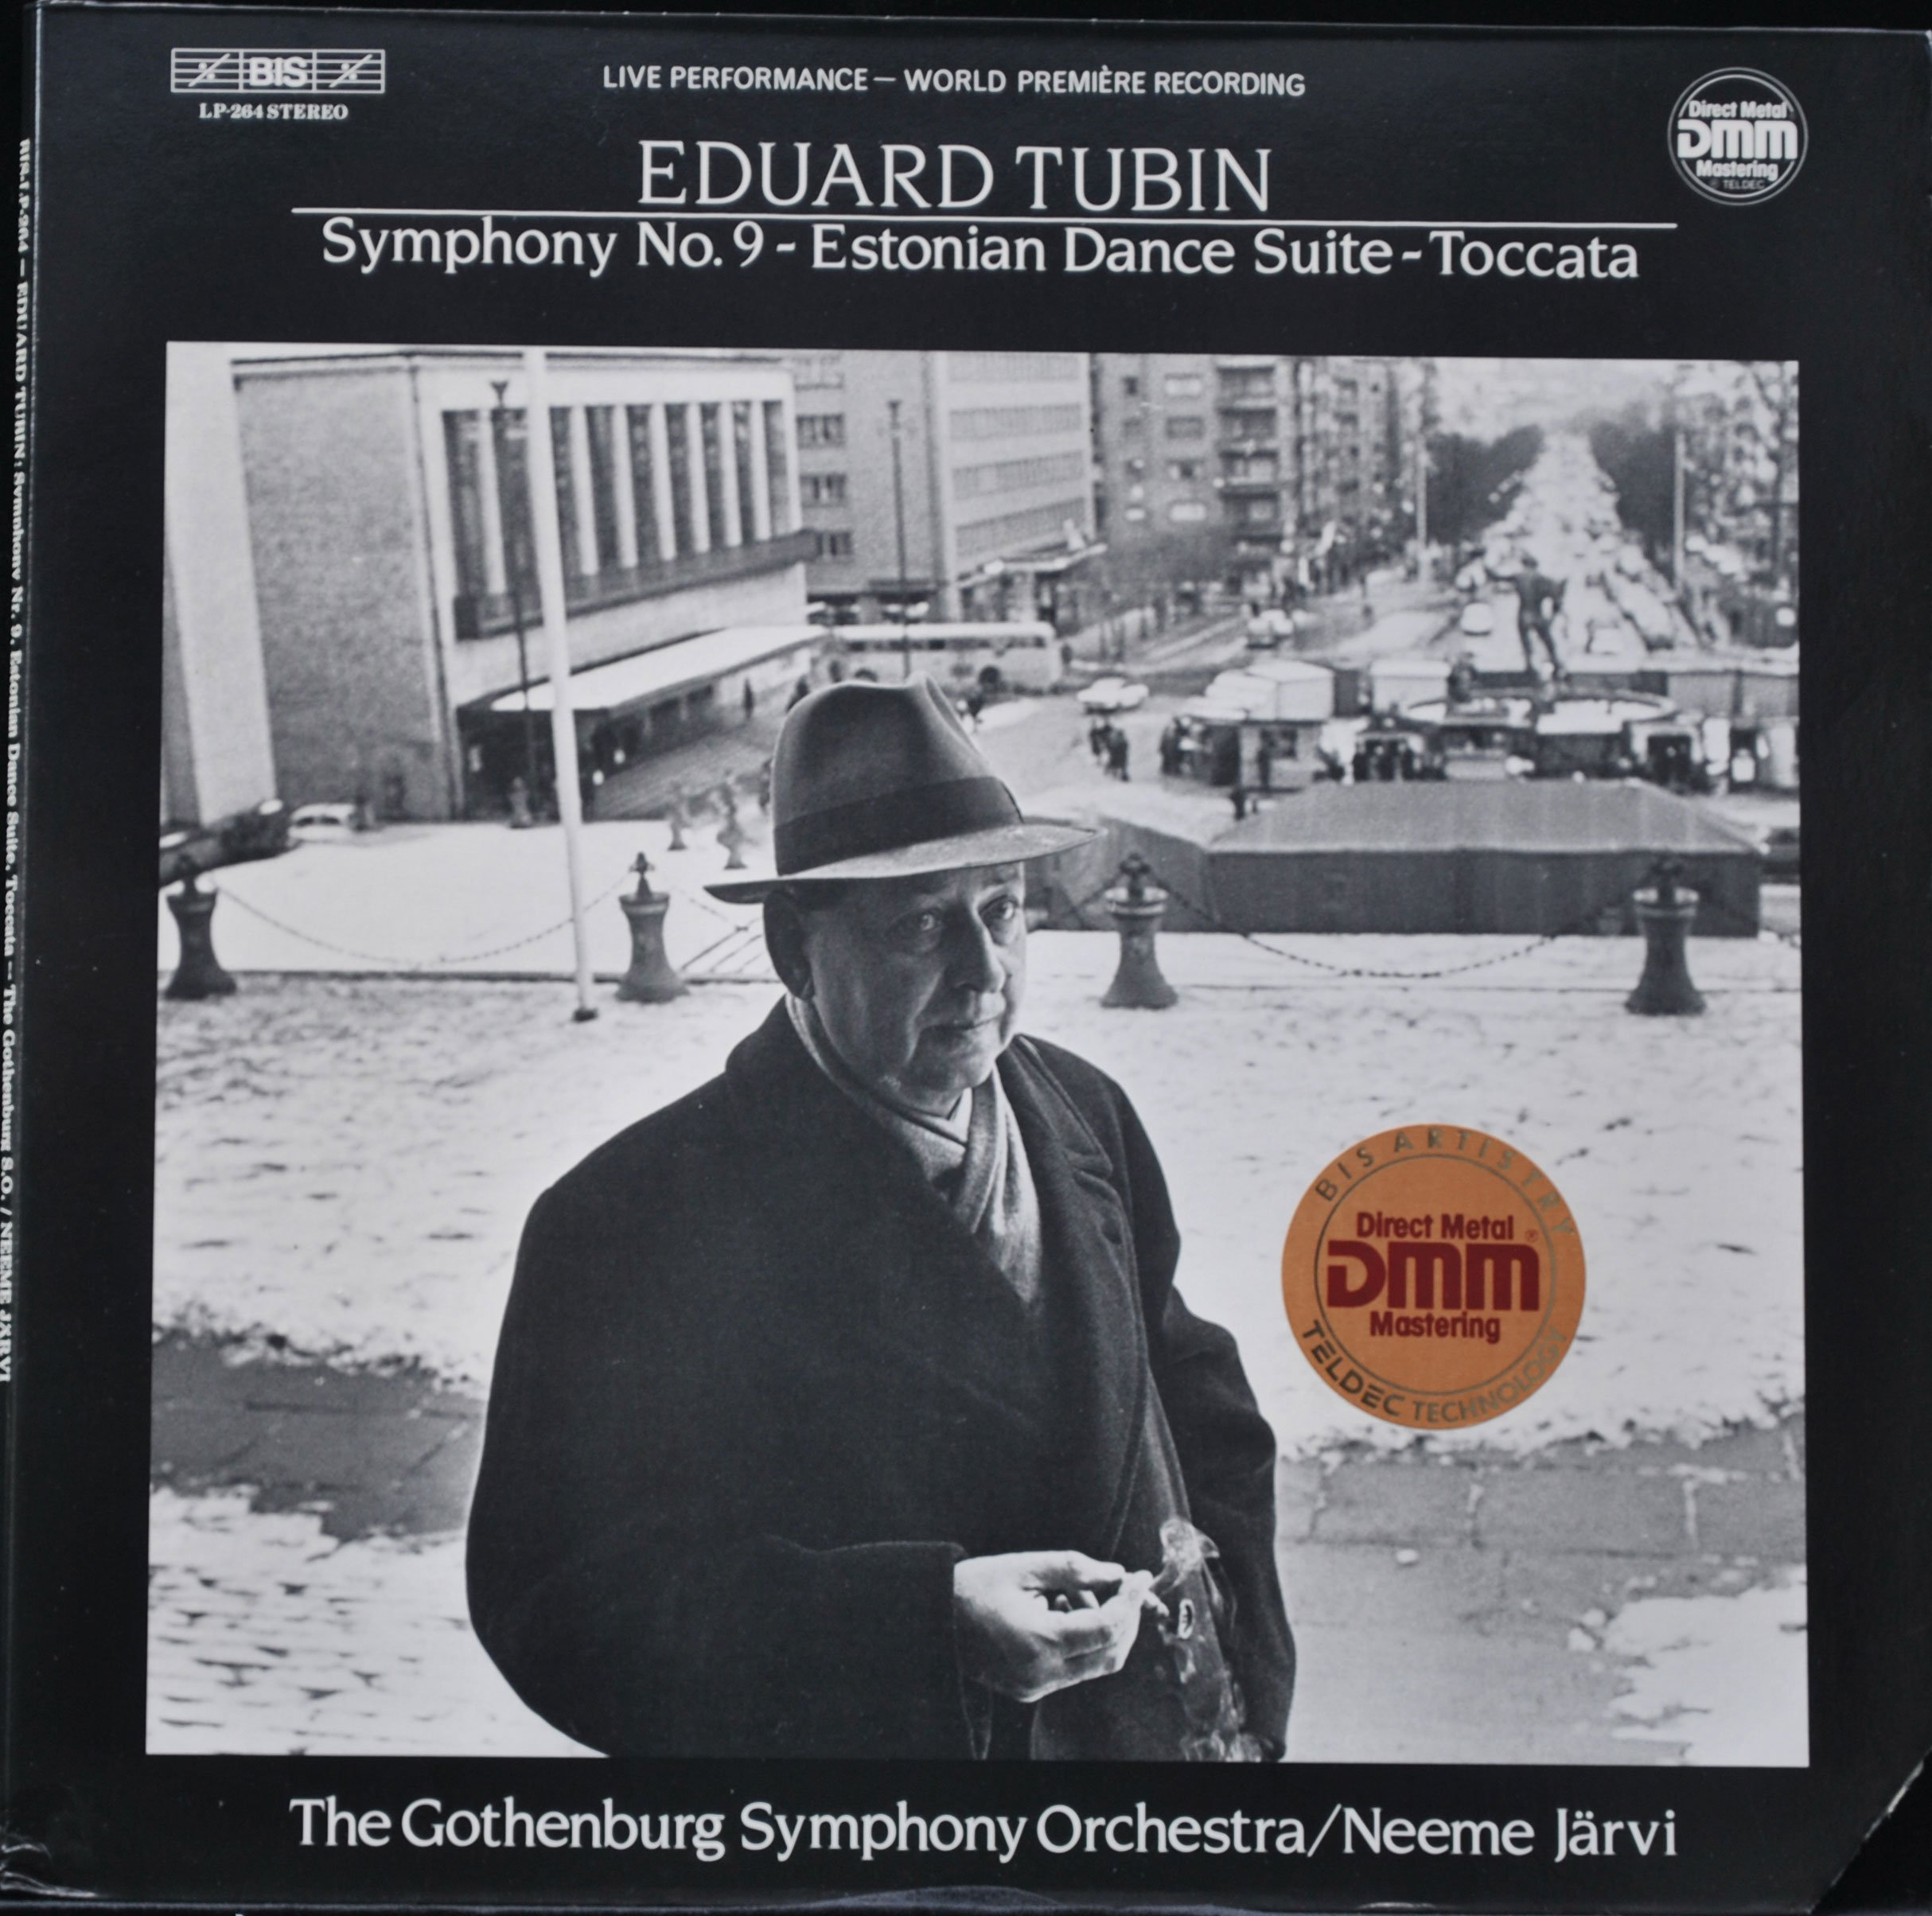 Eduard Tubin: Symphony 9 / Estonian Dance Suite / Toccata / Neeme Jarvi, The Gothenburg Symphony Orchestra by BIS LP-264